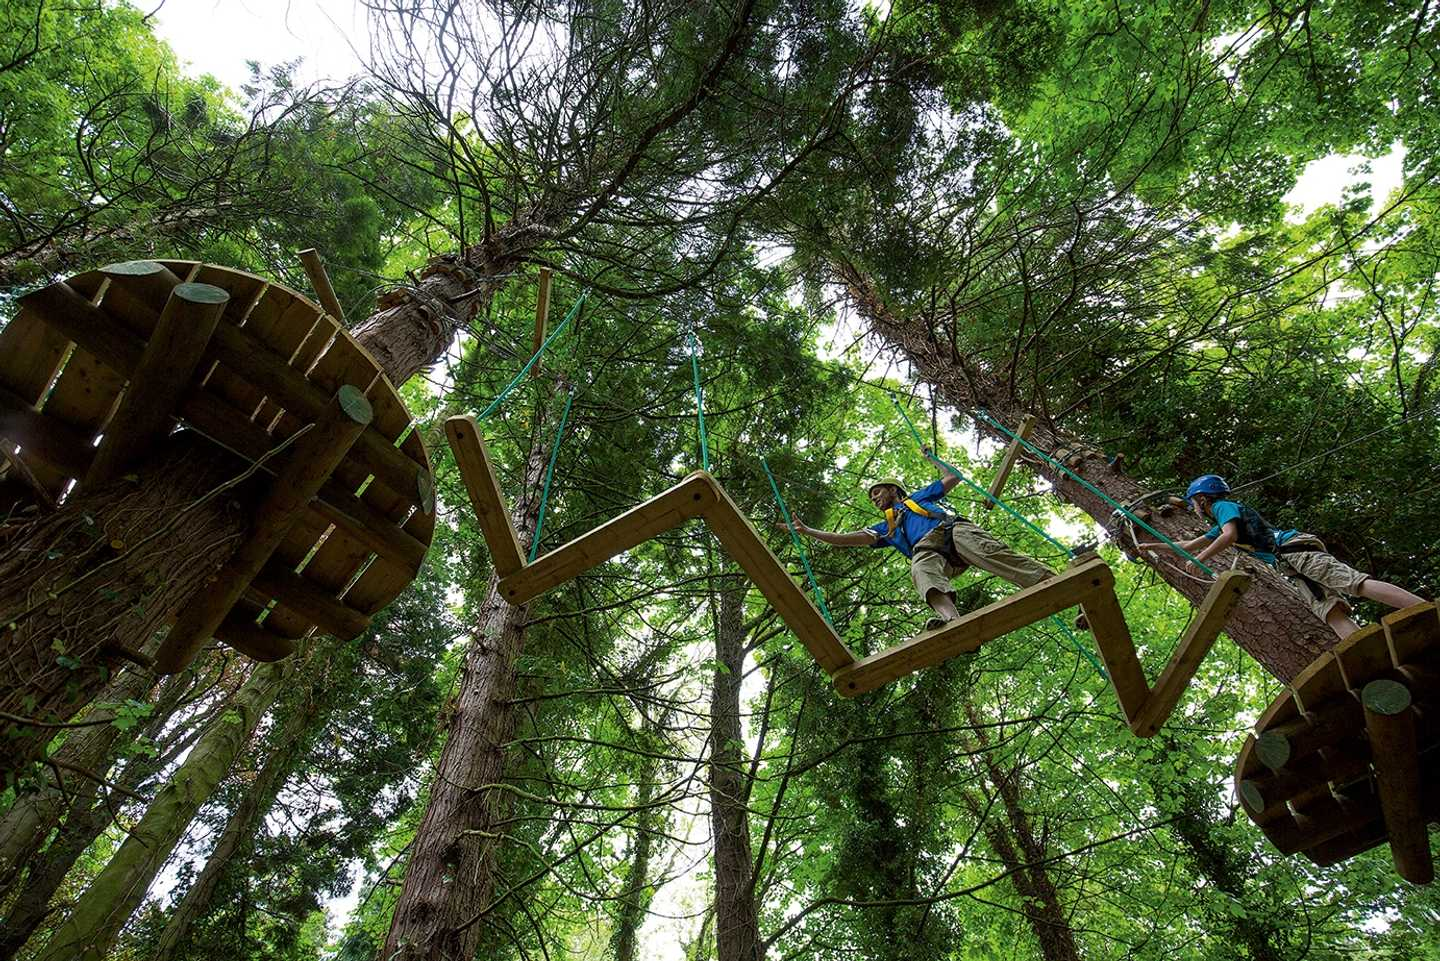 The aerial adventure course in the trees